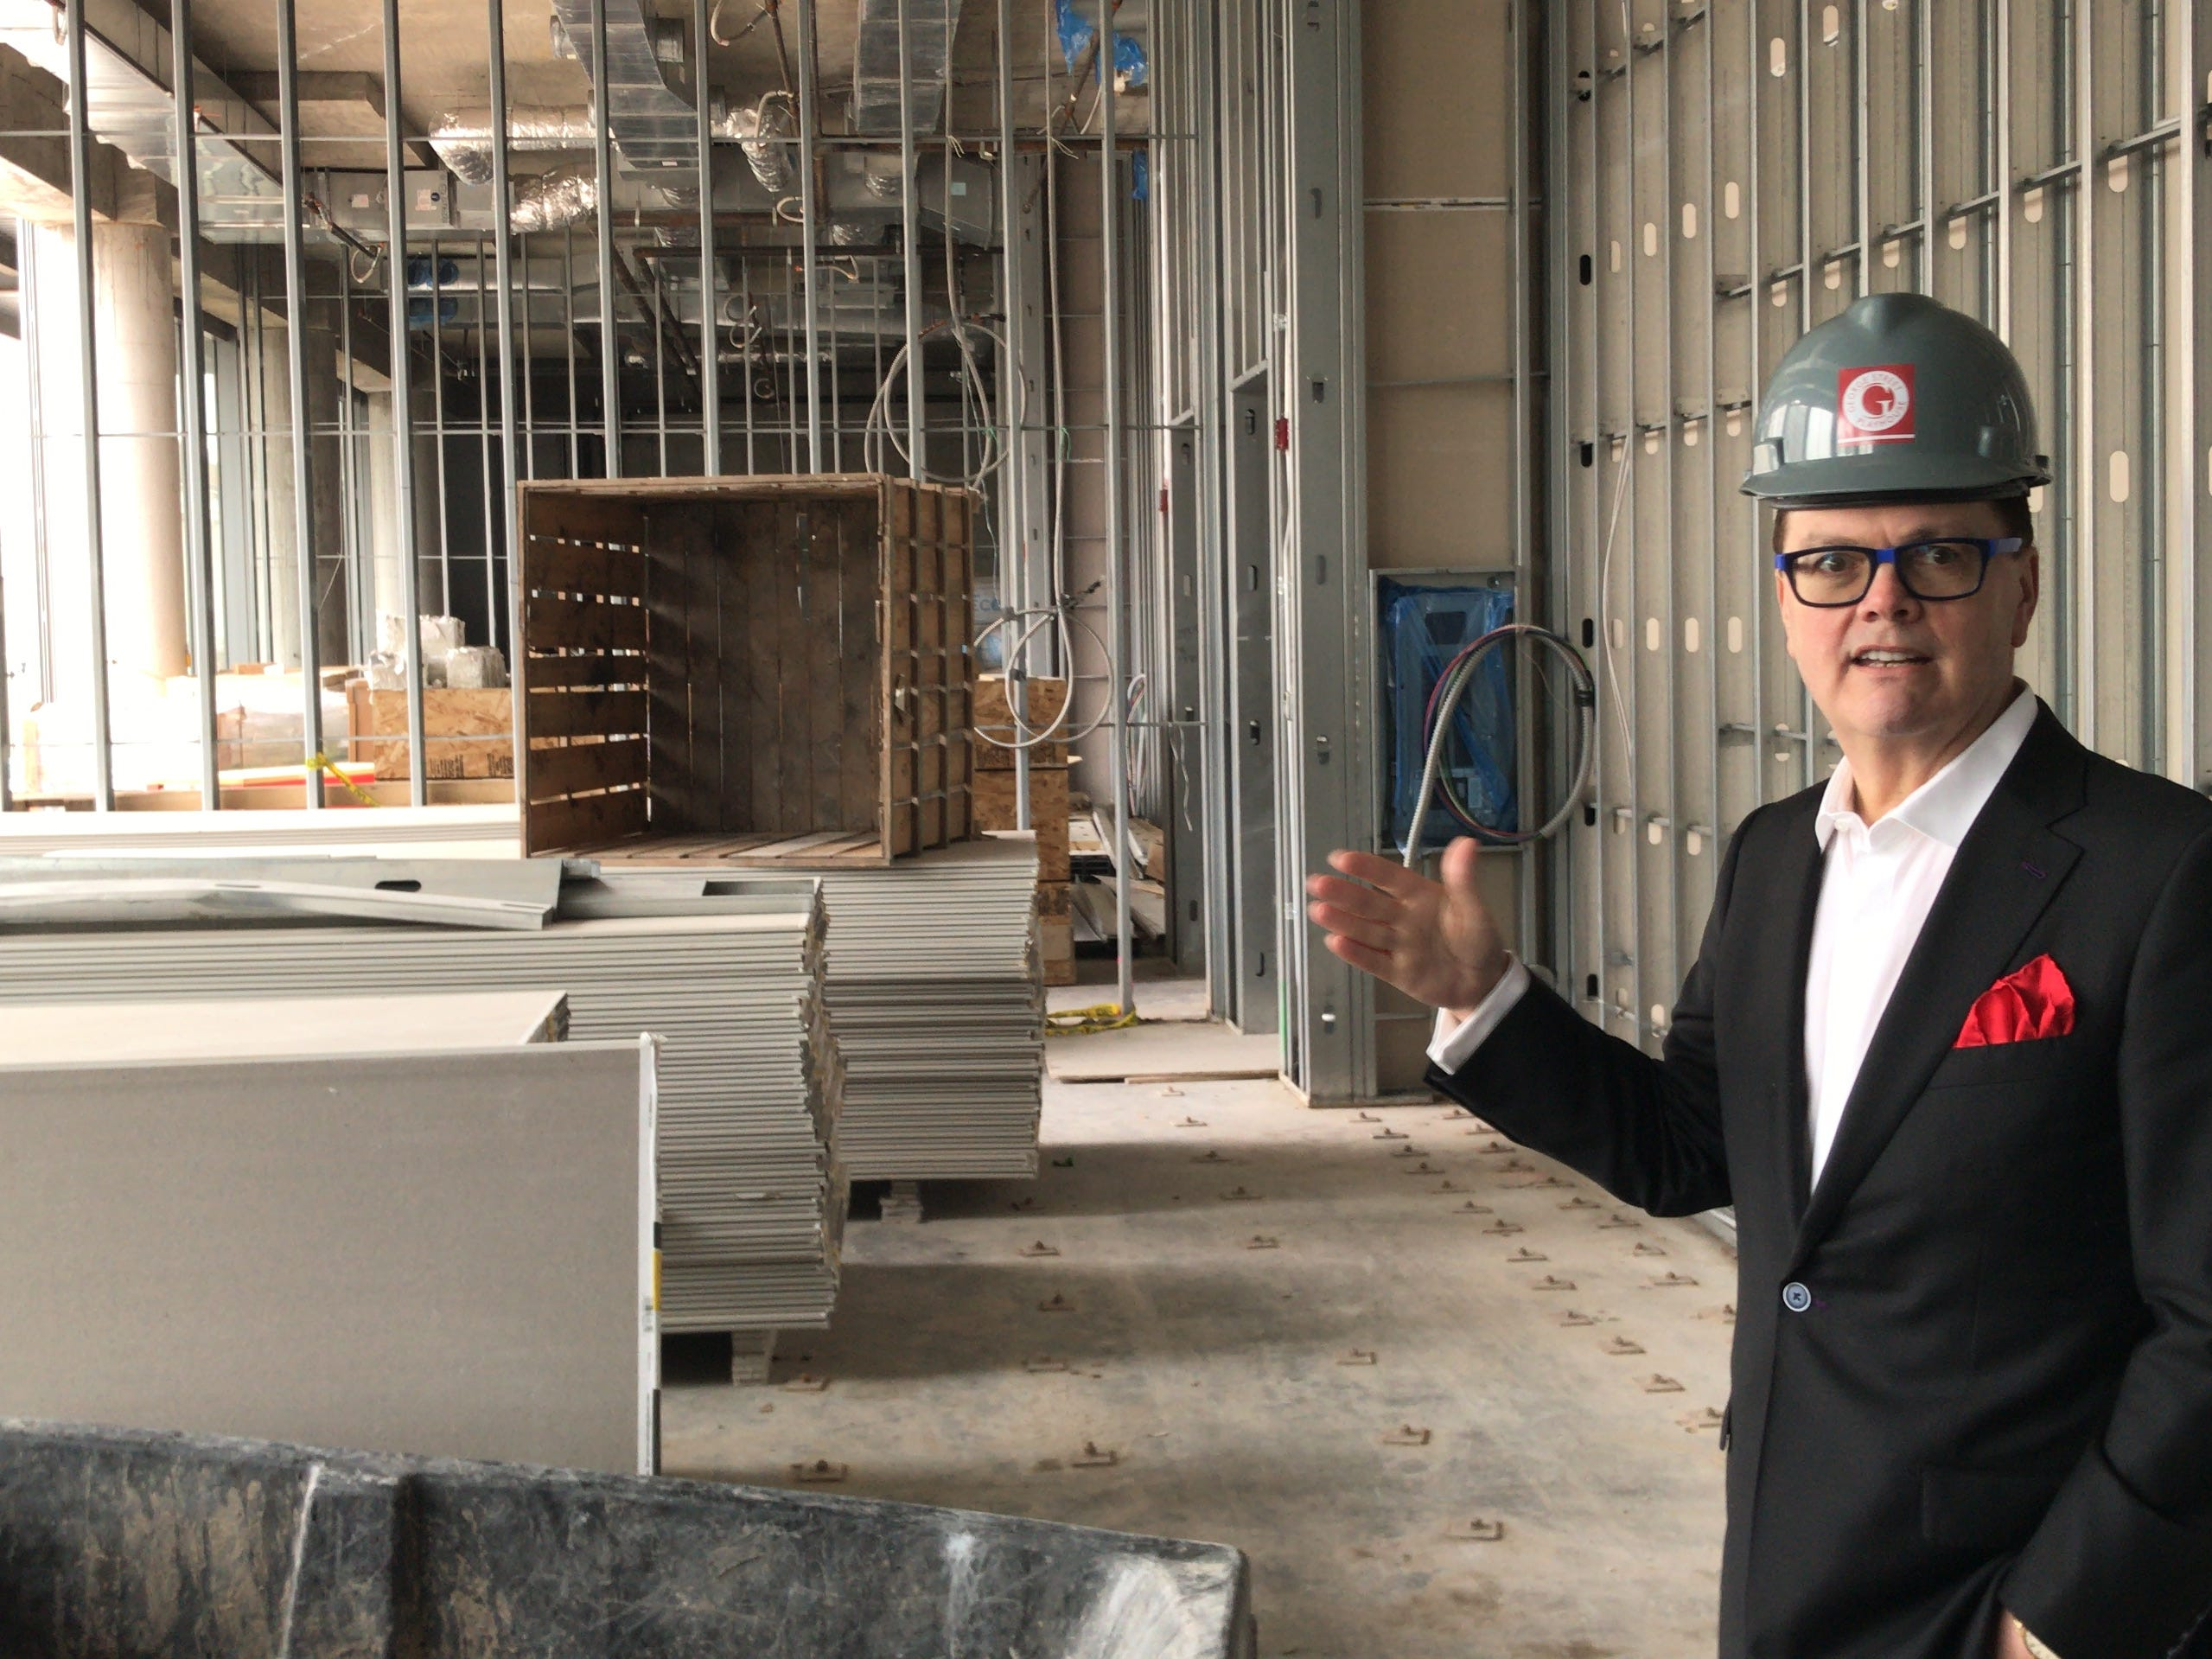 George Street Playhouse Artistic Director David Saint leads a tour of New Brunswick Performing Arts Center, which will open in September. The Playhouse's season will start in October.